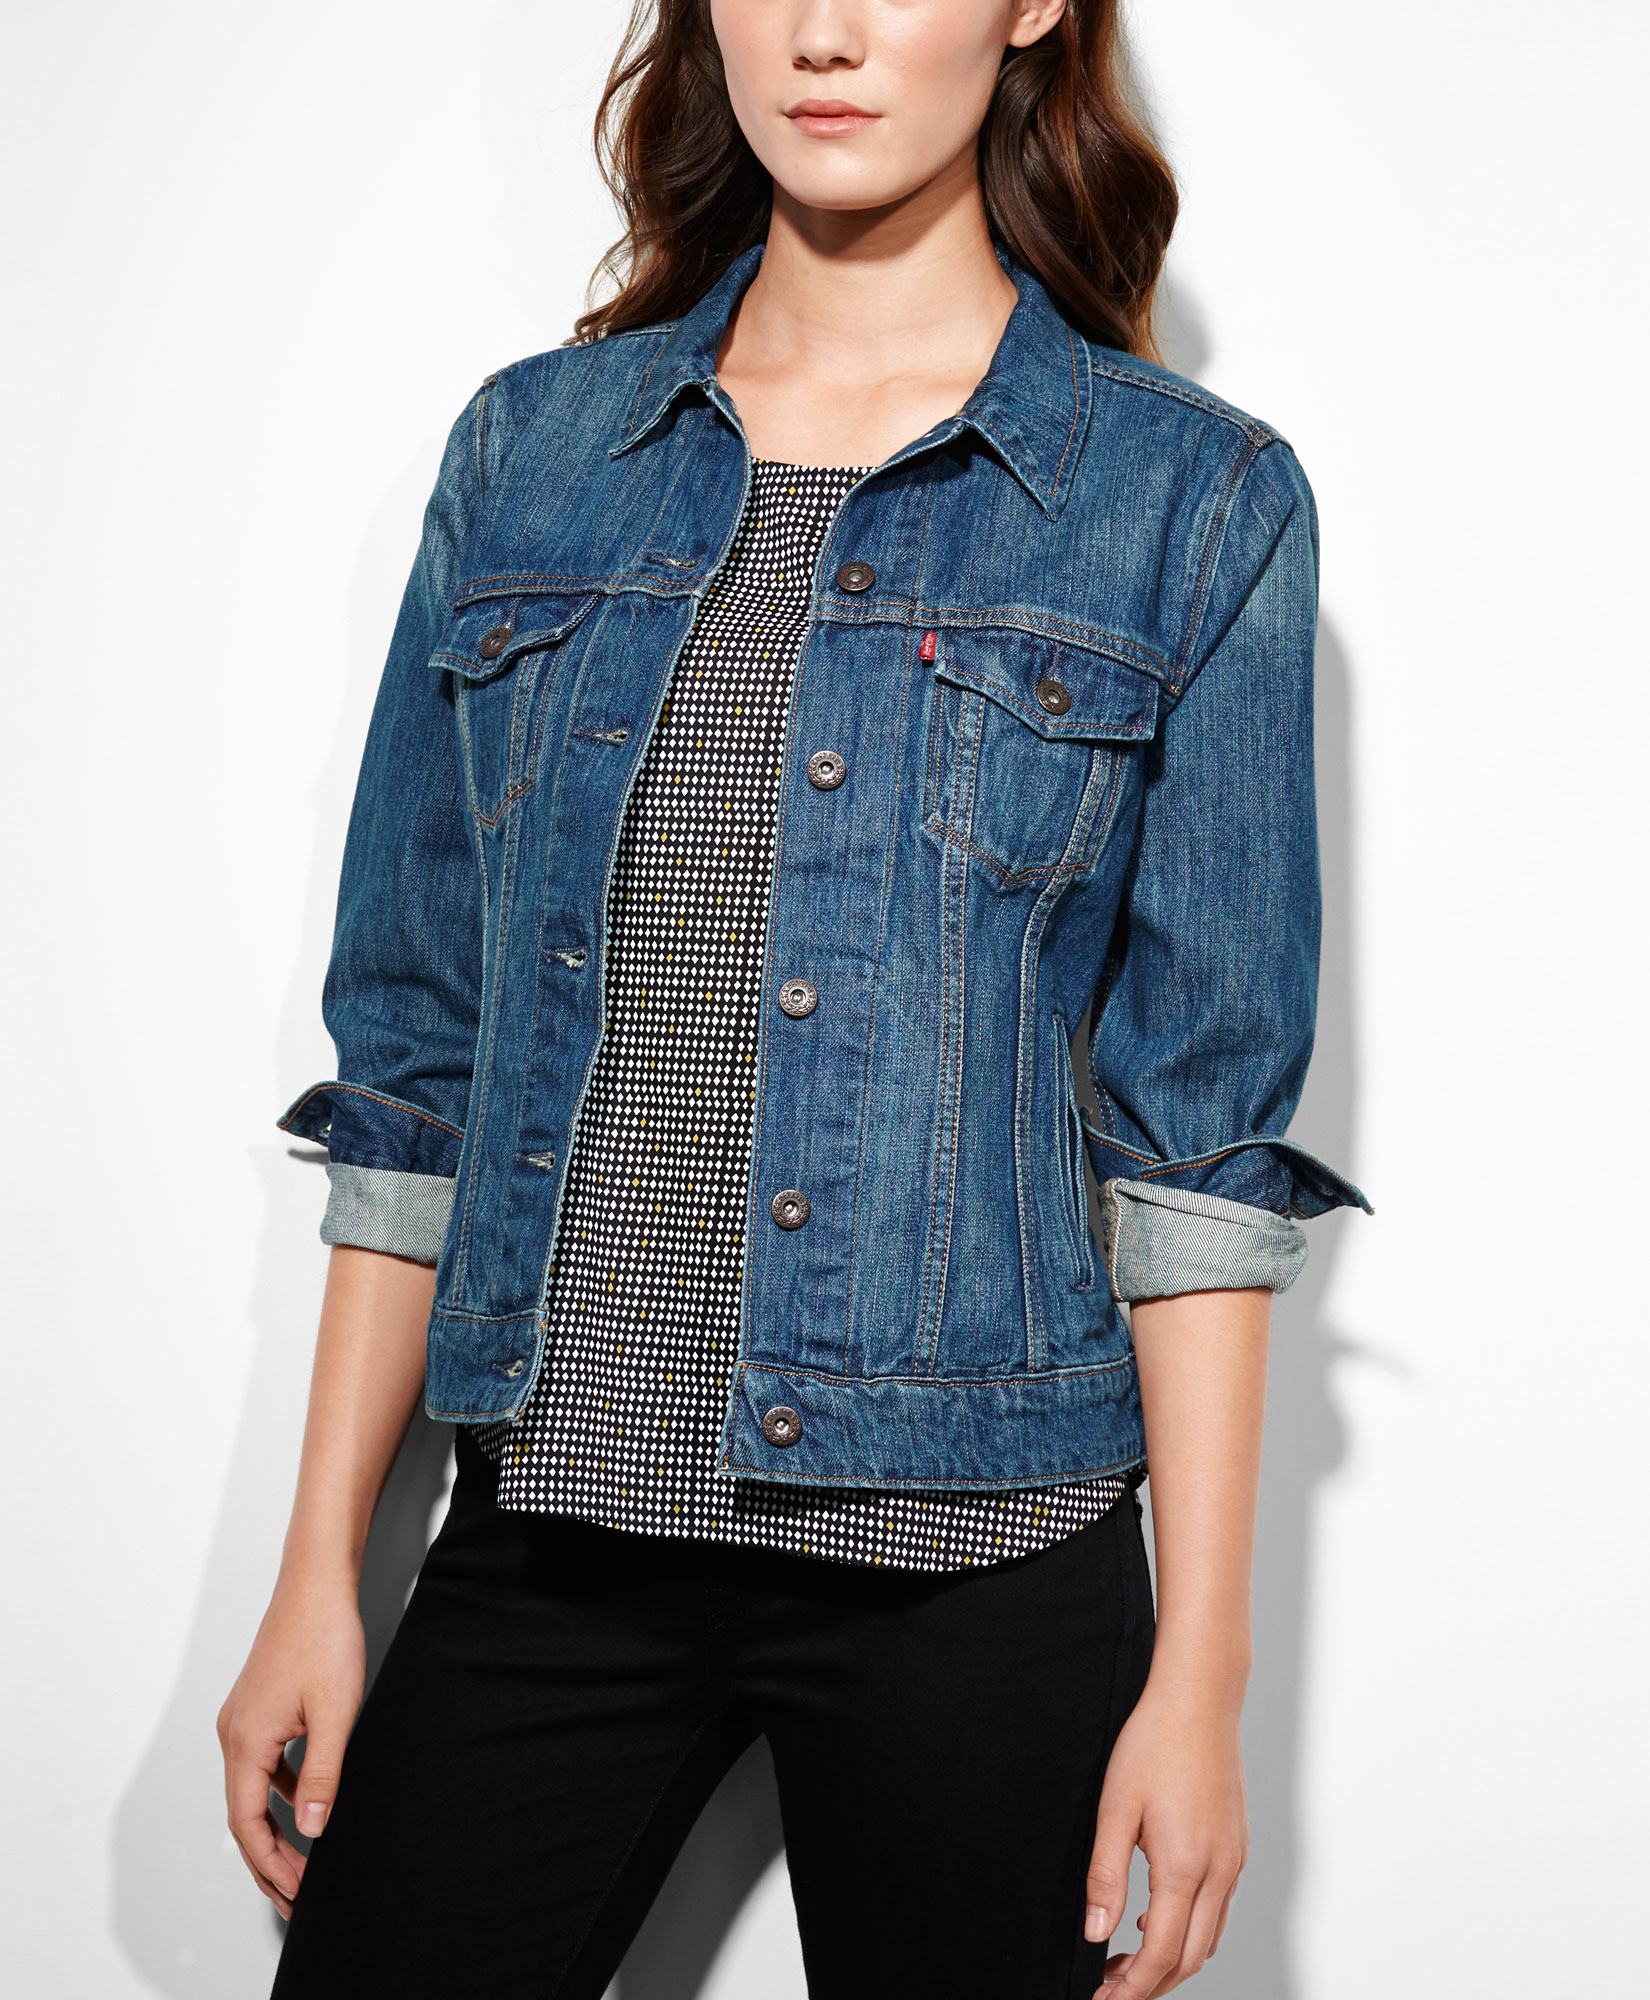 Ladies denim jackets on sale – Novelties of modern fashion photo blog